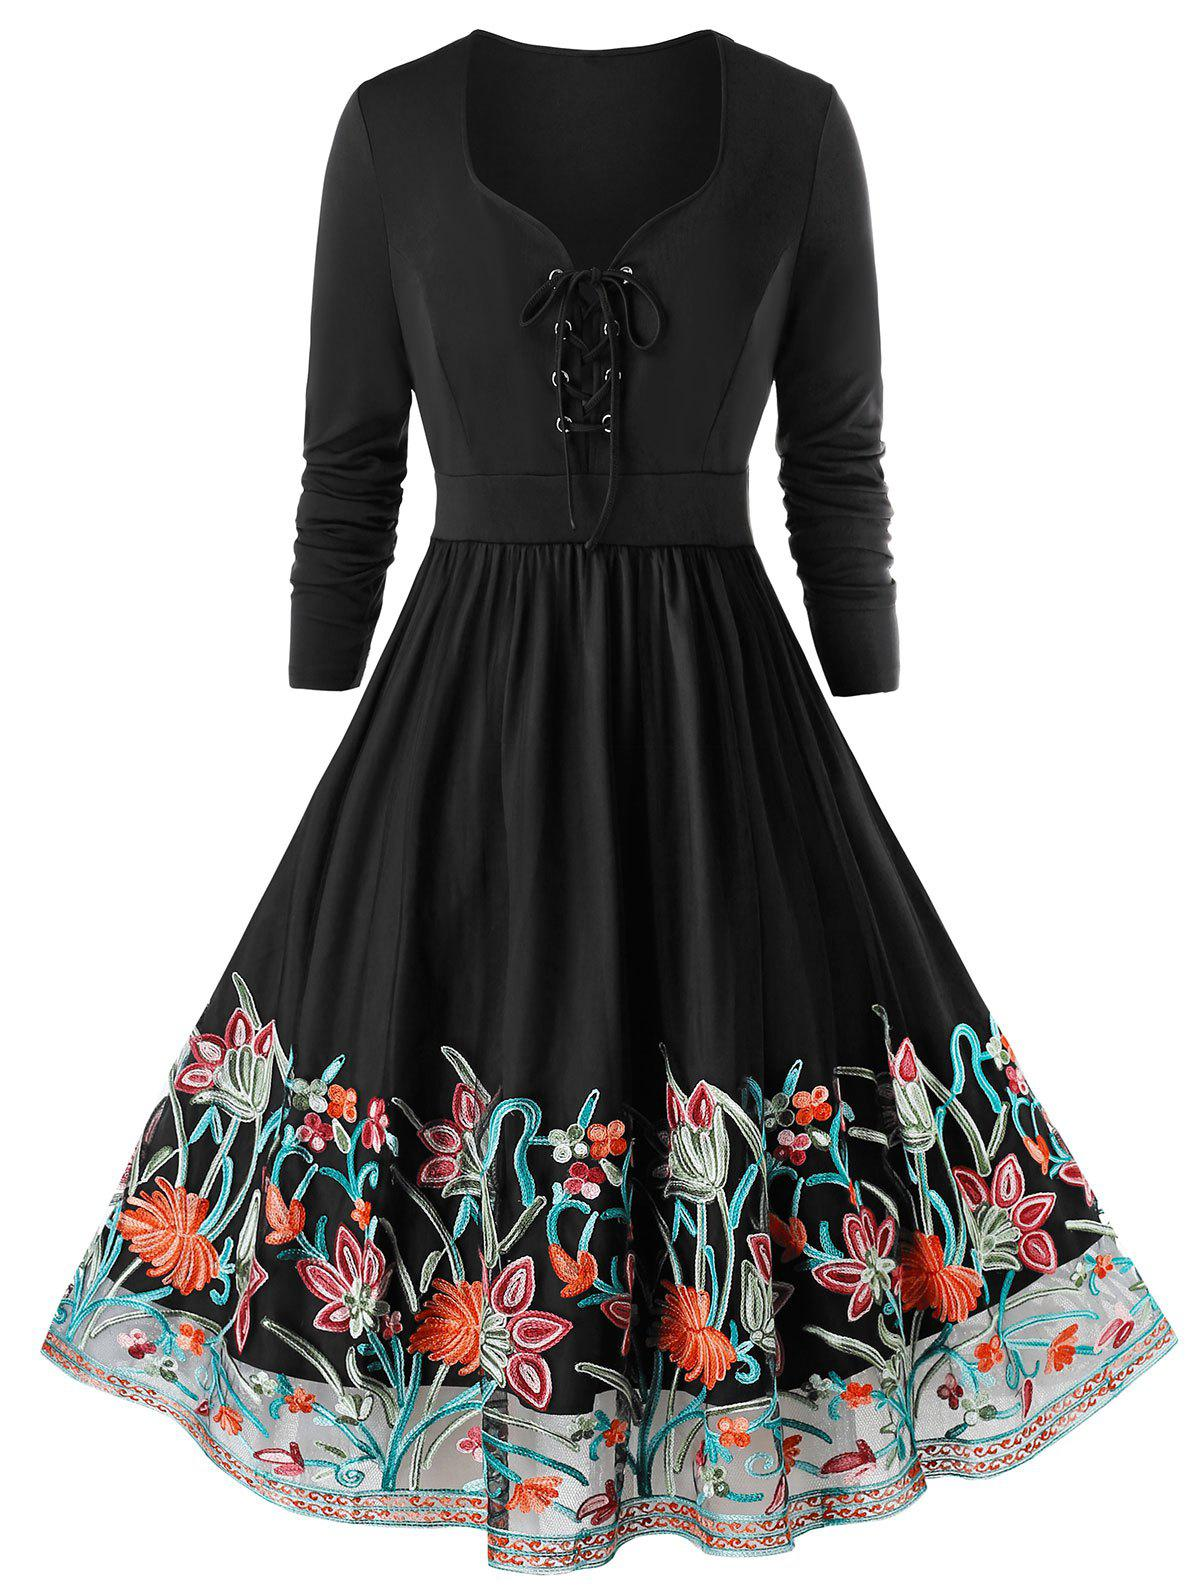 Plus Size Embroidered Lace Up Party Dress - BLACK 4X